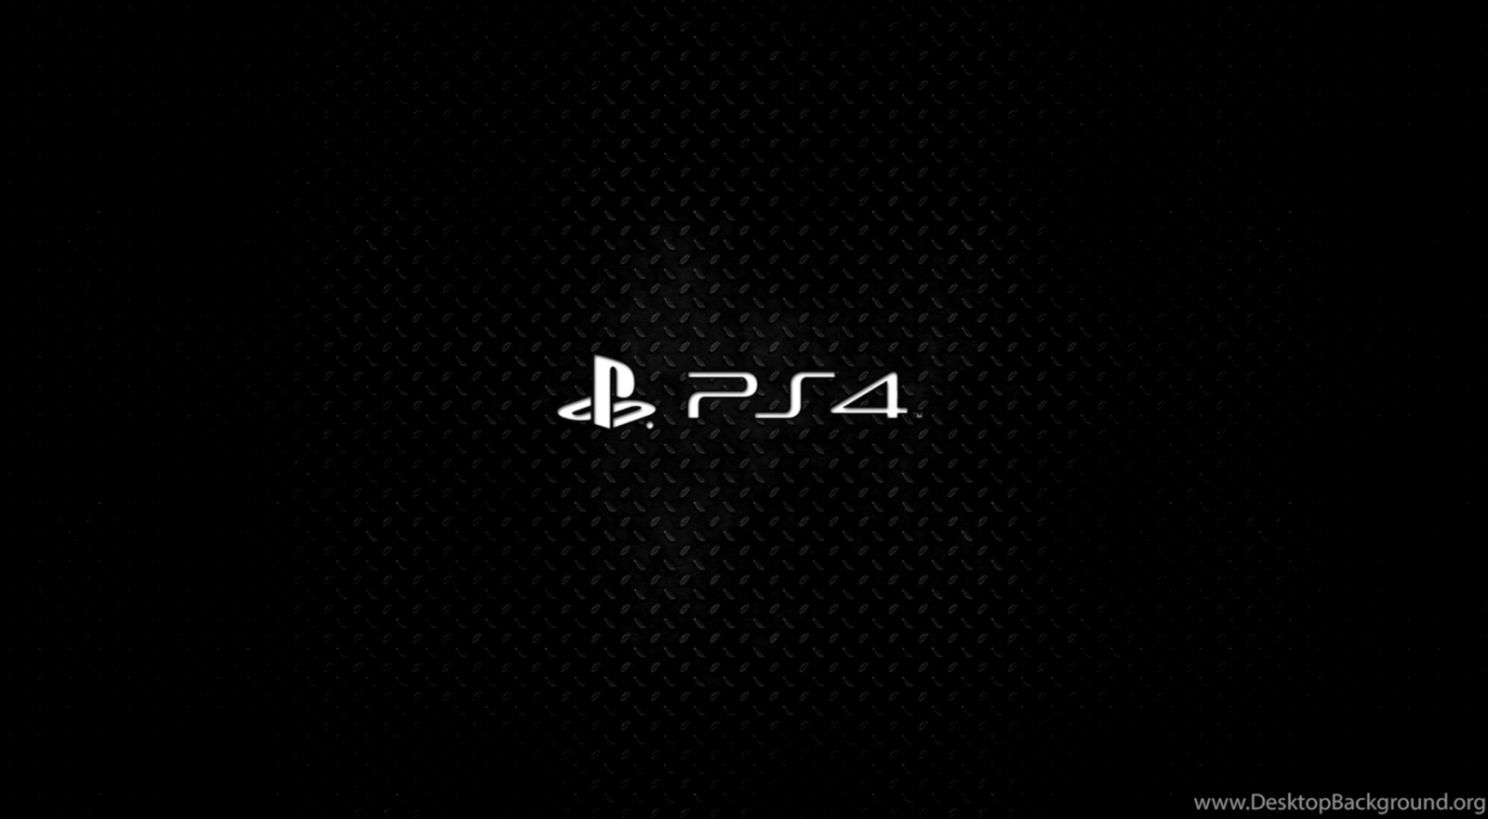 Ps3 Wallpaper Size Styles Wallpapers